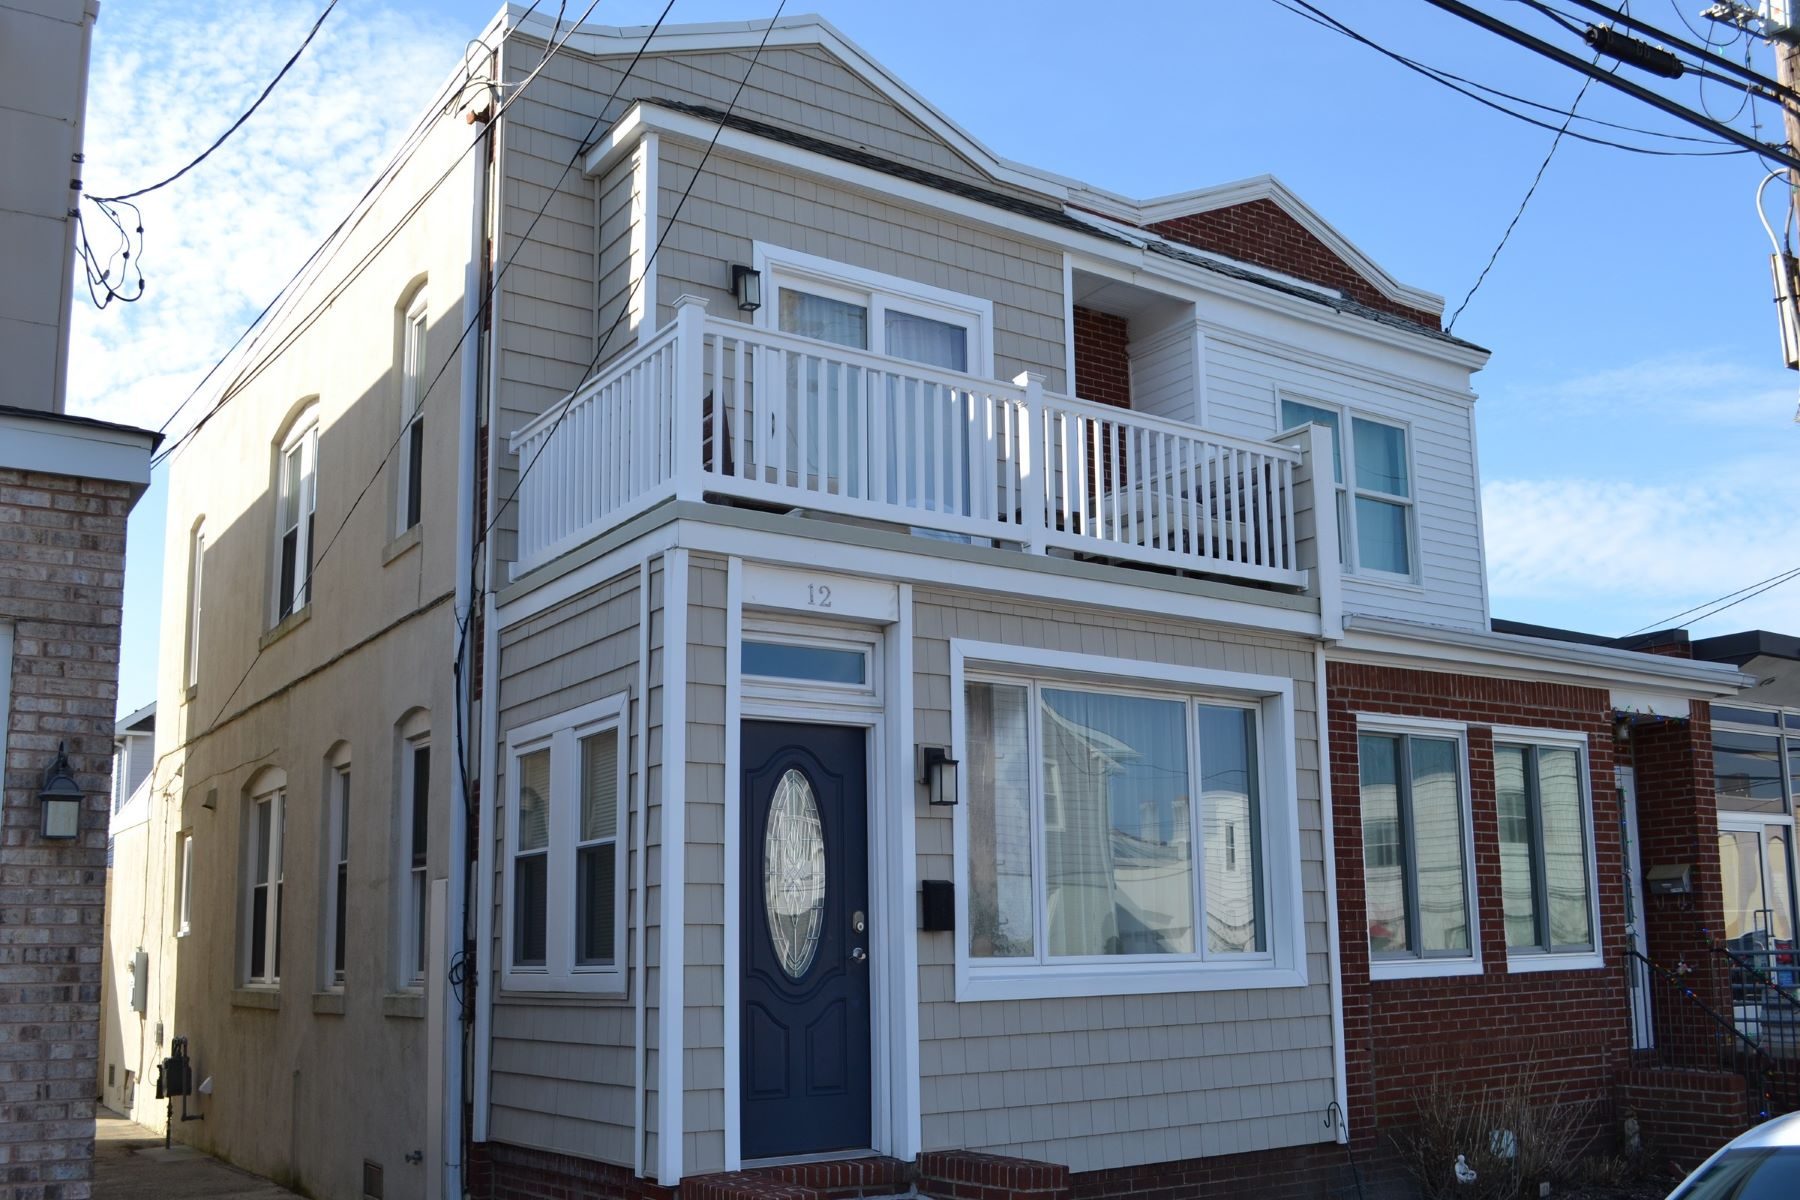 Townhouse for Rent at 12 S Franklin Ave 12 S Franklin Ave JULY, Margate, New Jersey 08402 United States